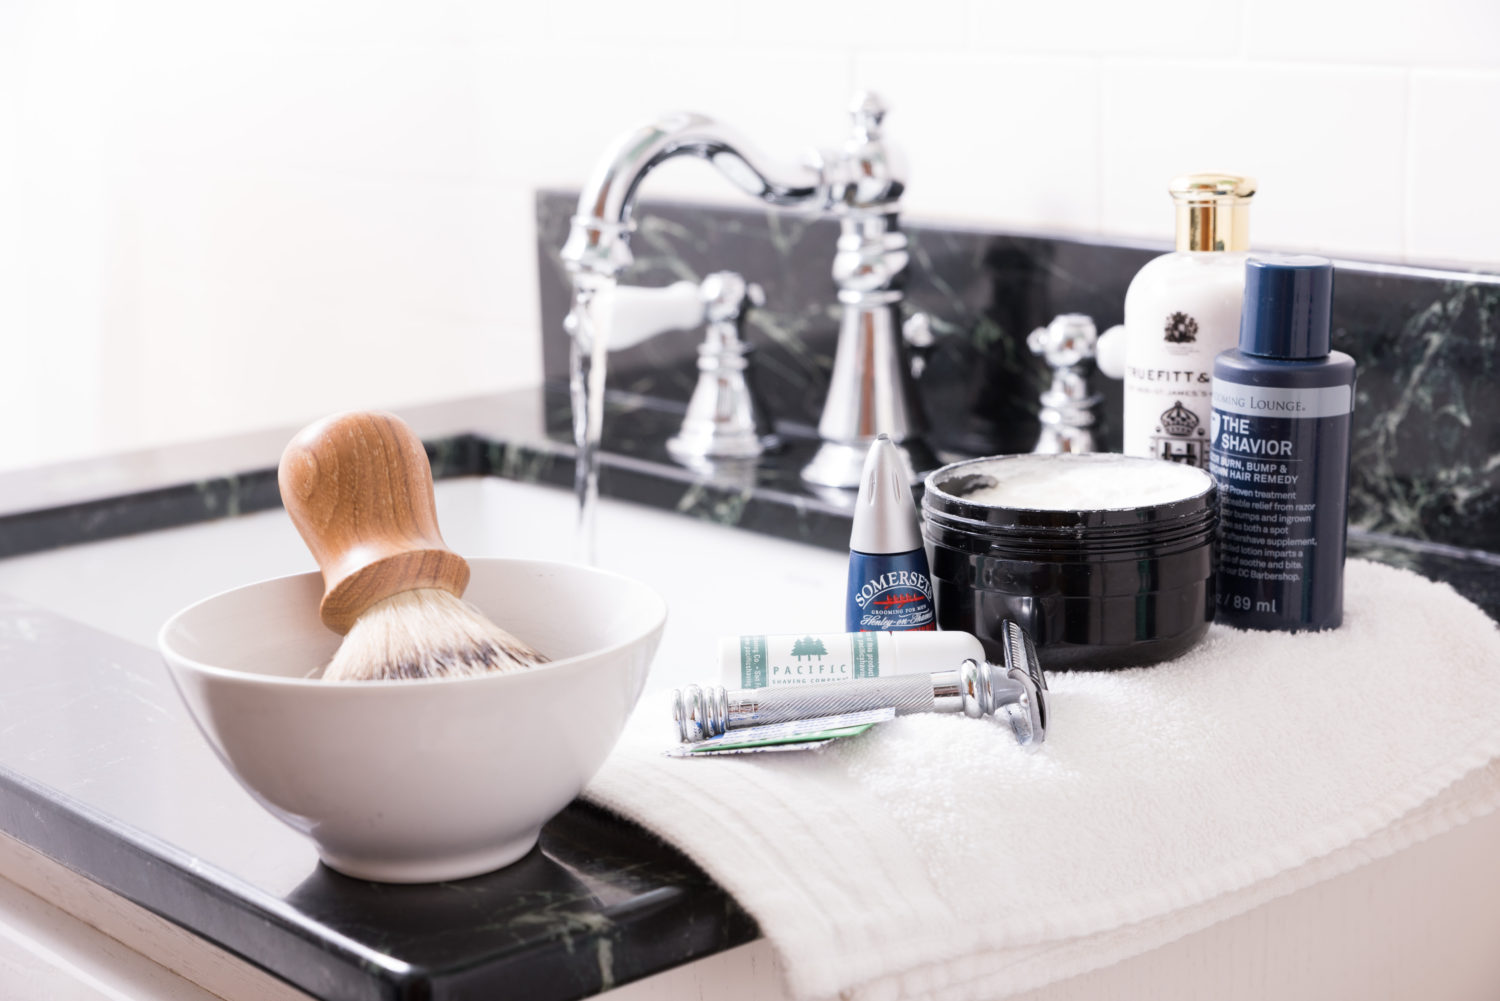 Set up your bathroom and do a proper pre-shave to get the best results